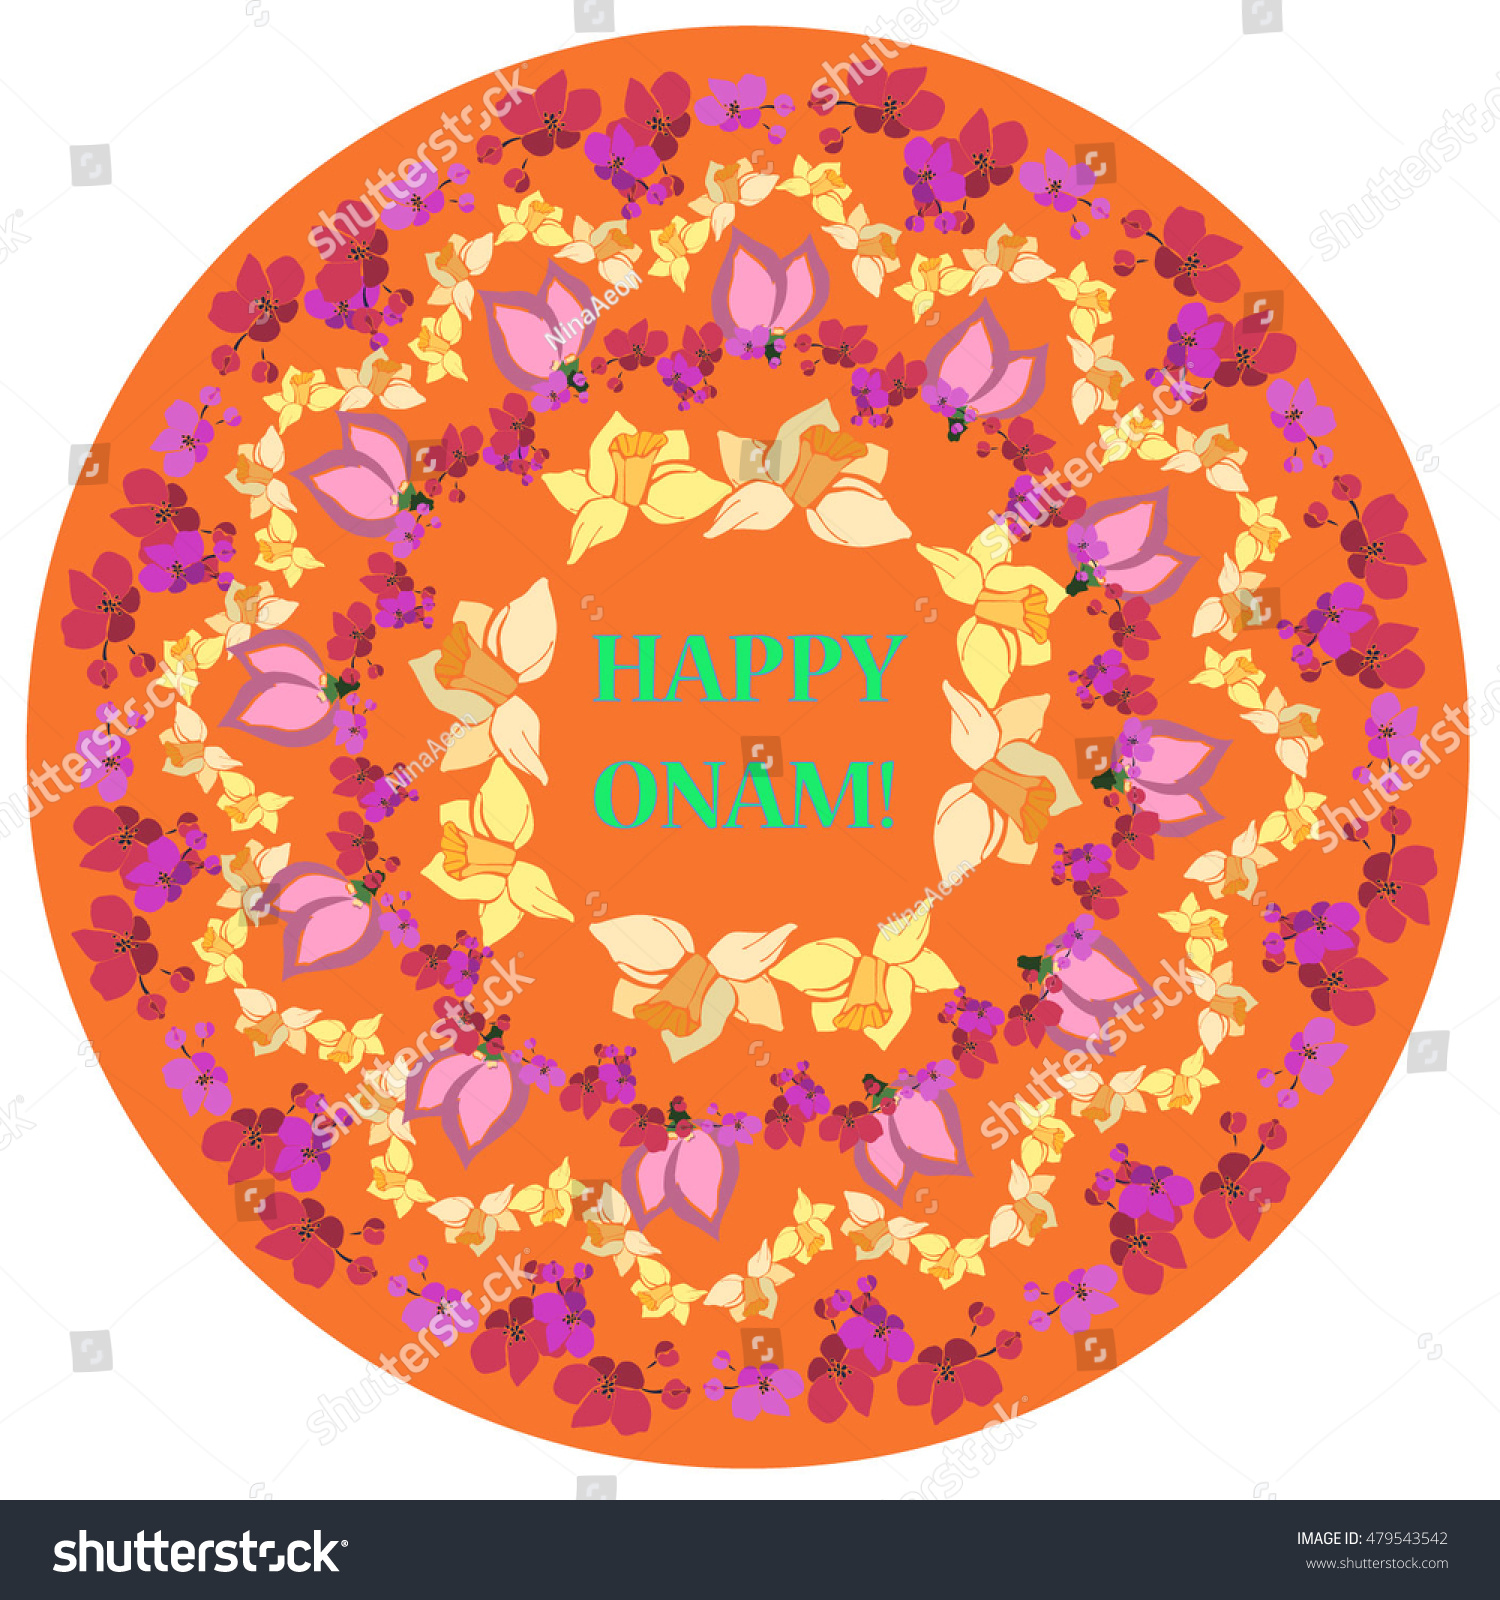 Happy Onam Flower Rangoli Vector Object Holiday Decoration For Festival In Kerala Colorful